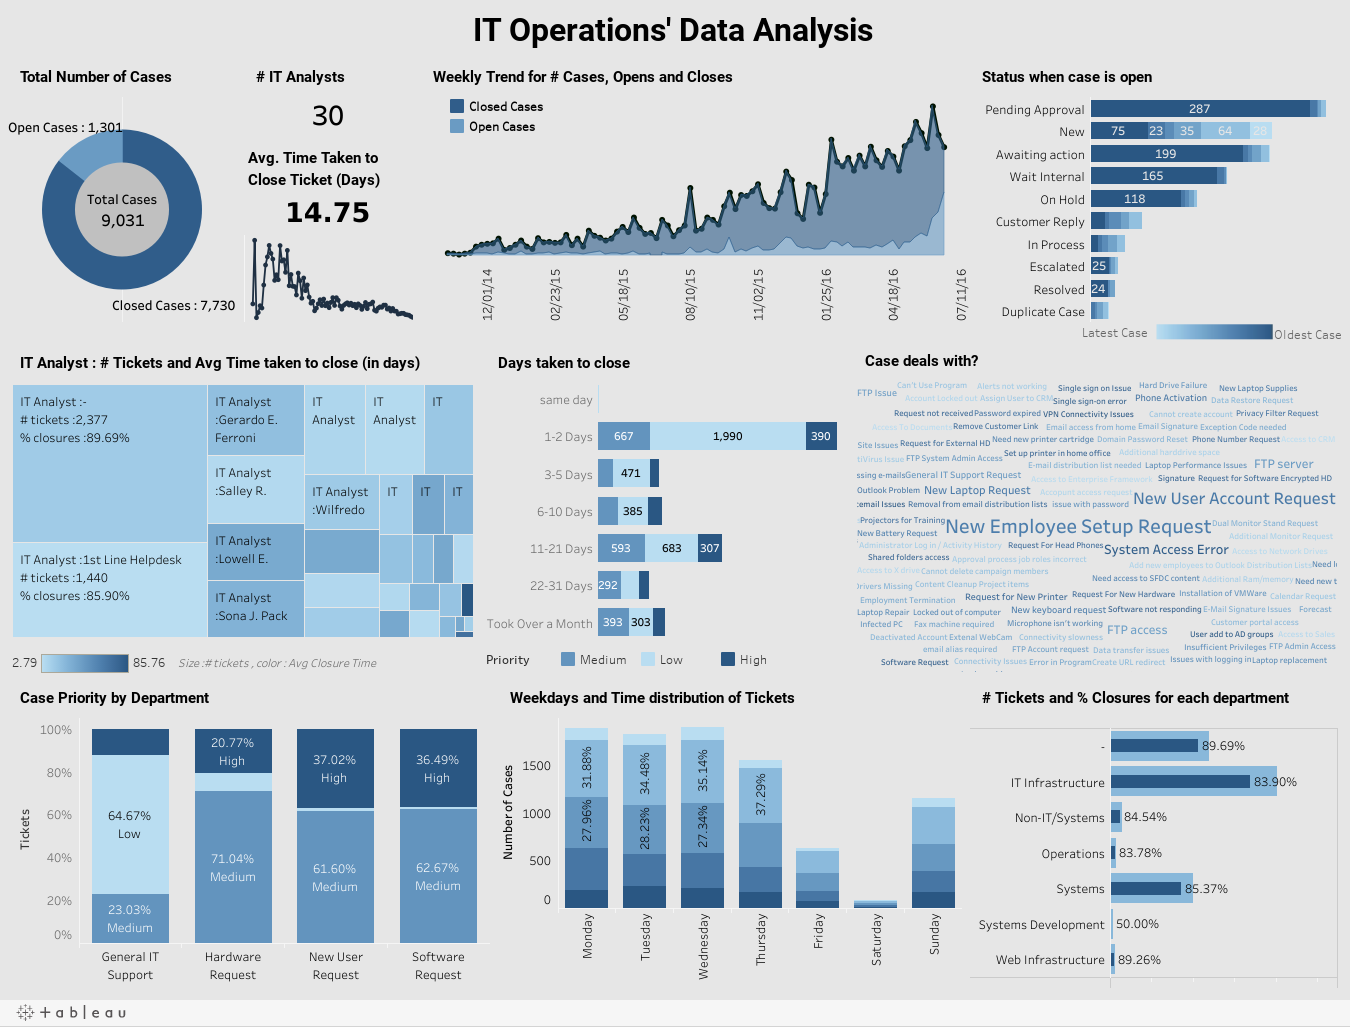 IT Operations' Data Analysis